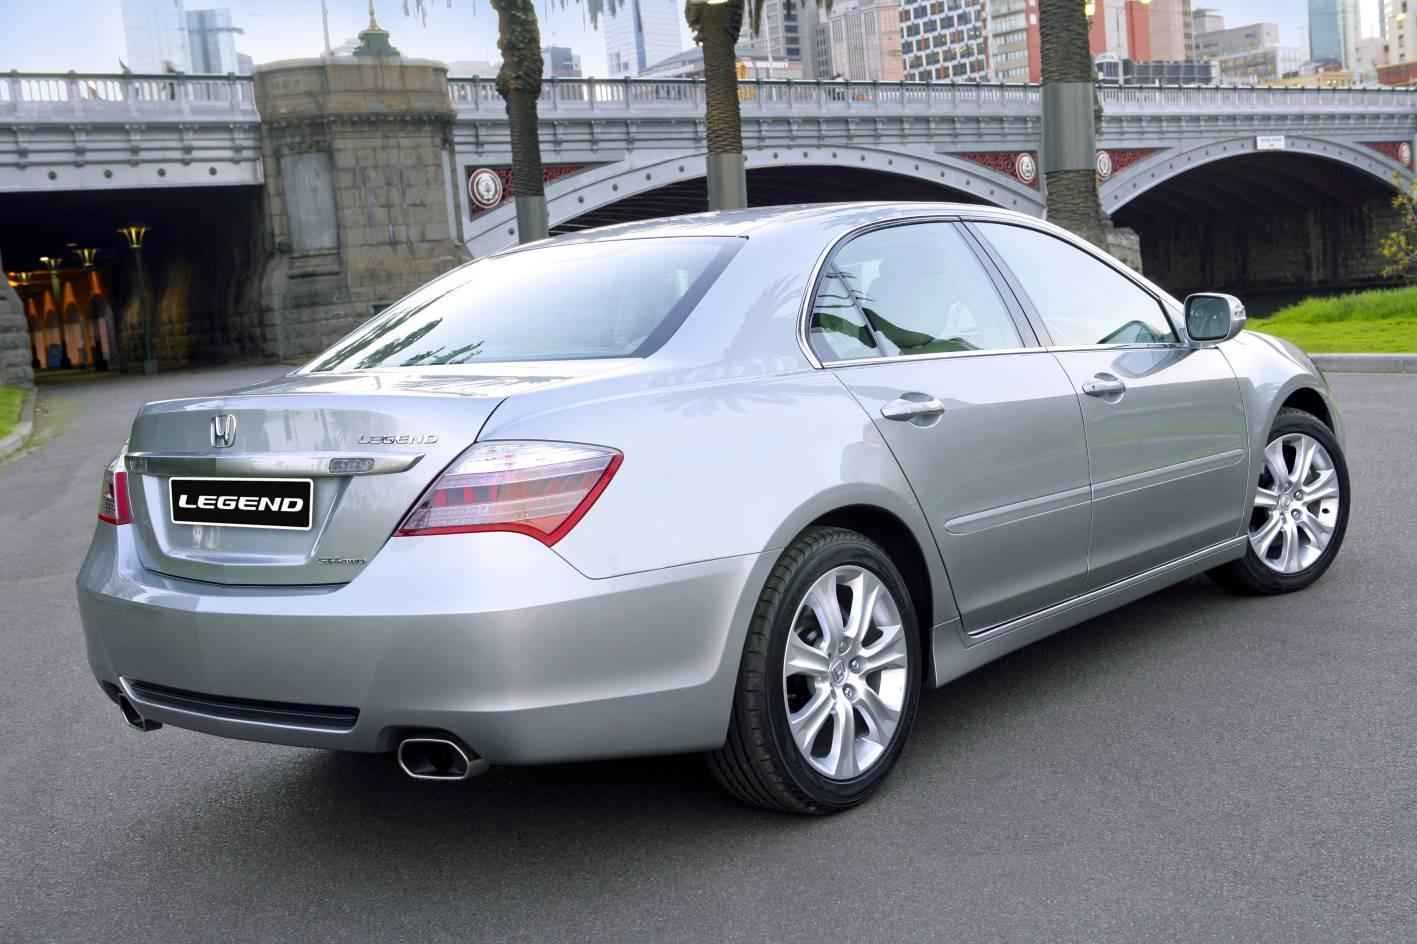 2011 Honda Legend #11